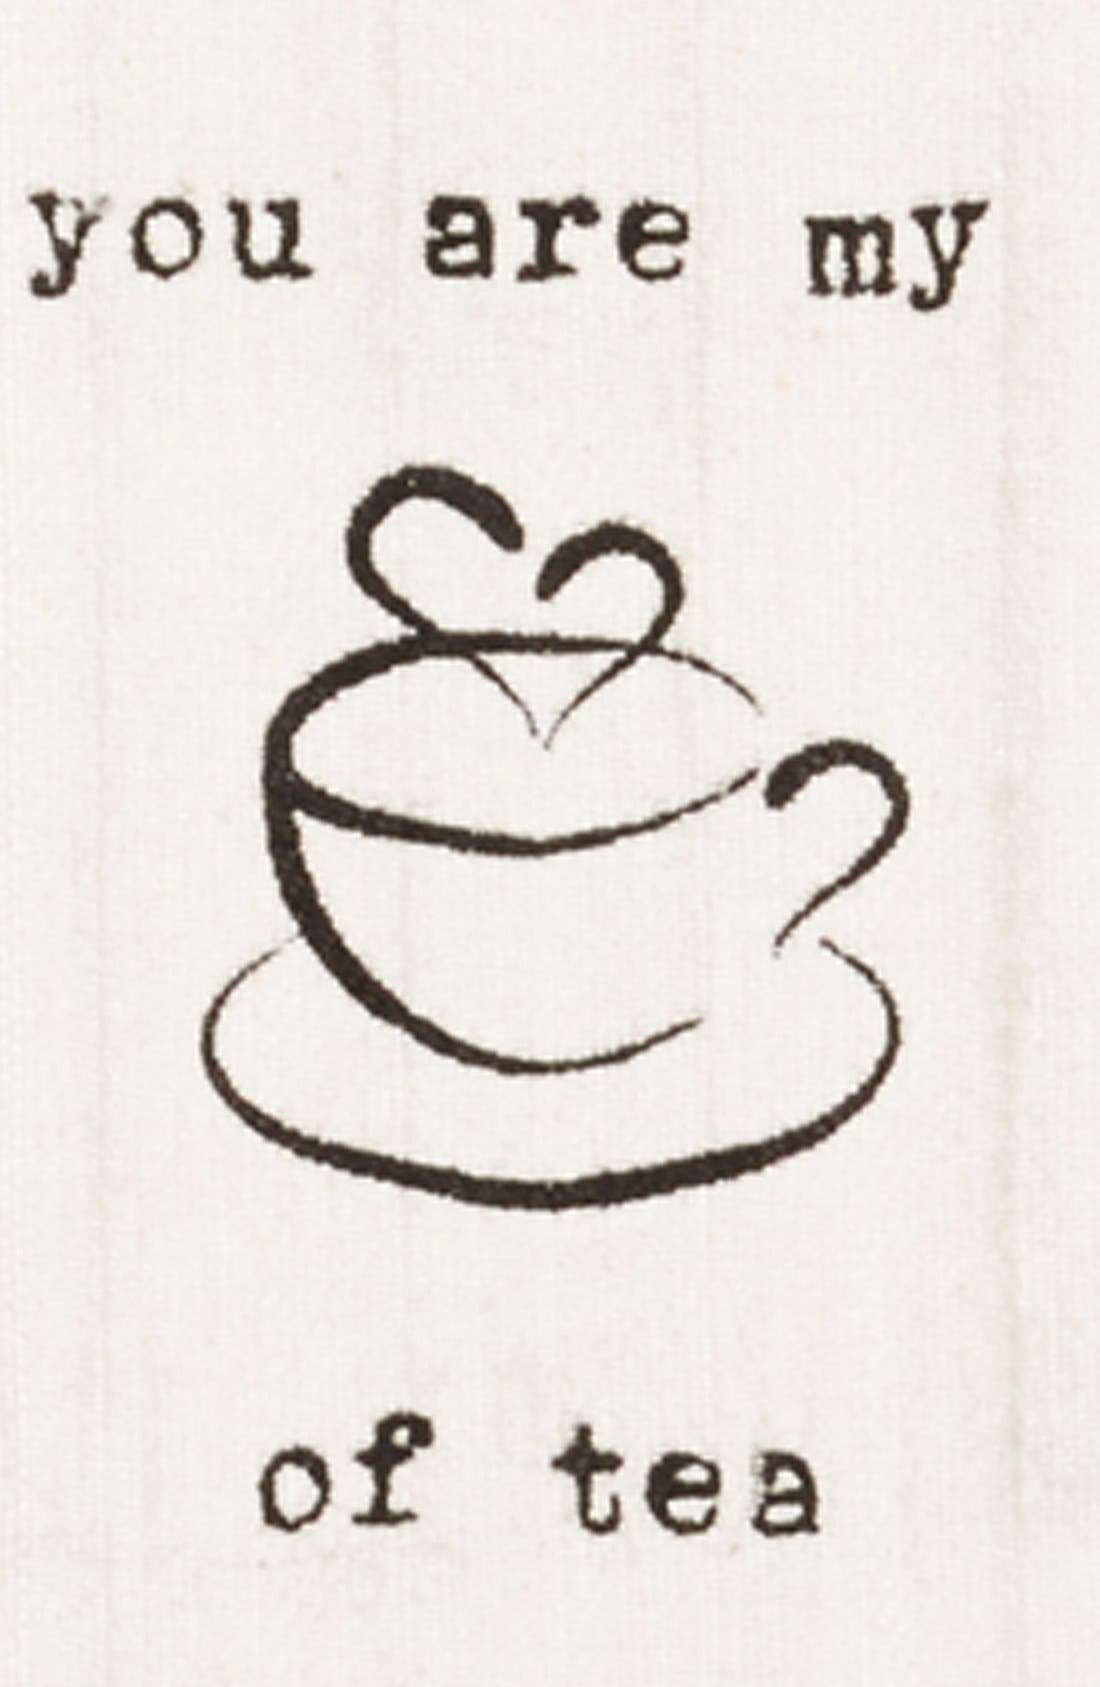 Alternate Image 2  - Second Nature by Hand 'You Are My Cup of Tea' Dish Towel